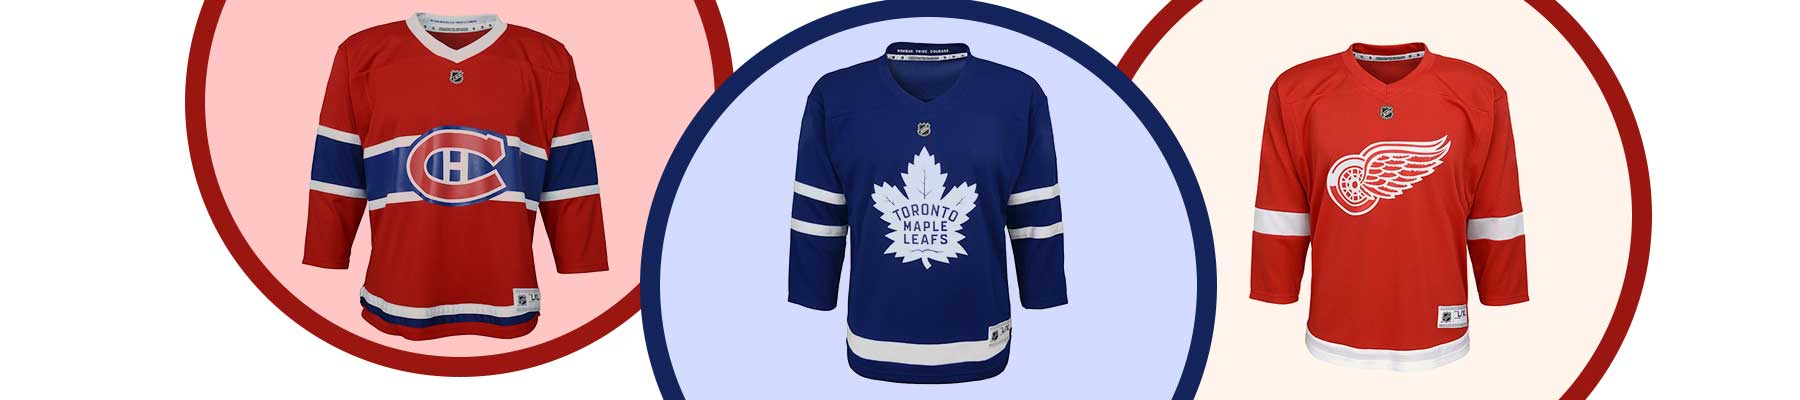 NHL Team Jerseys for Infants and Toddlers